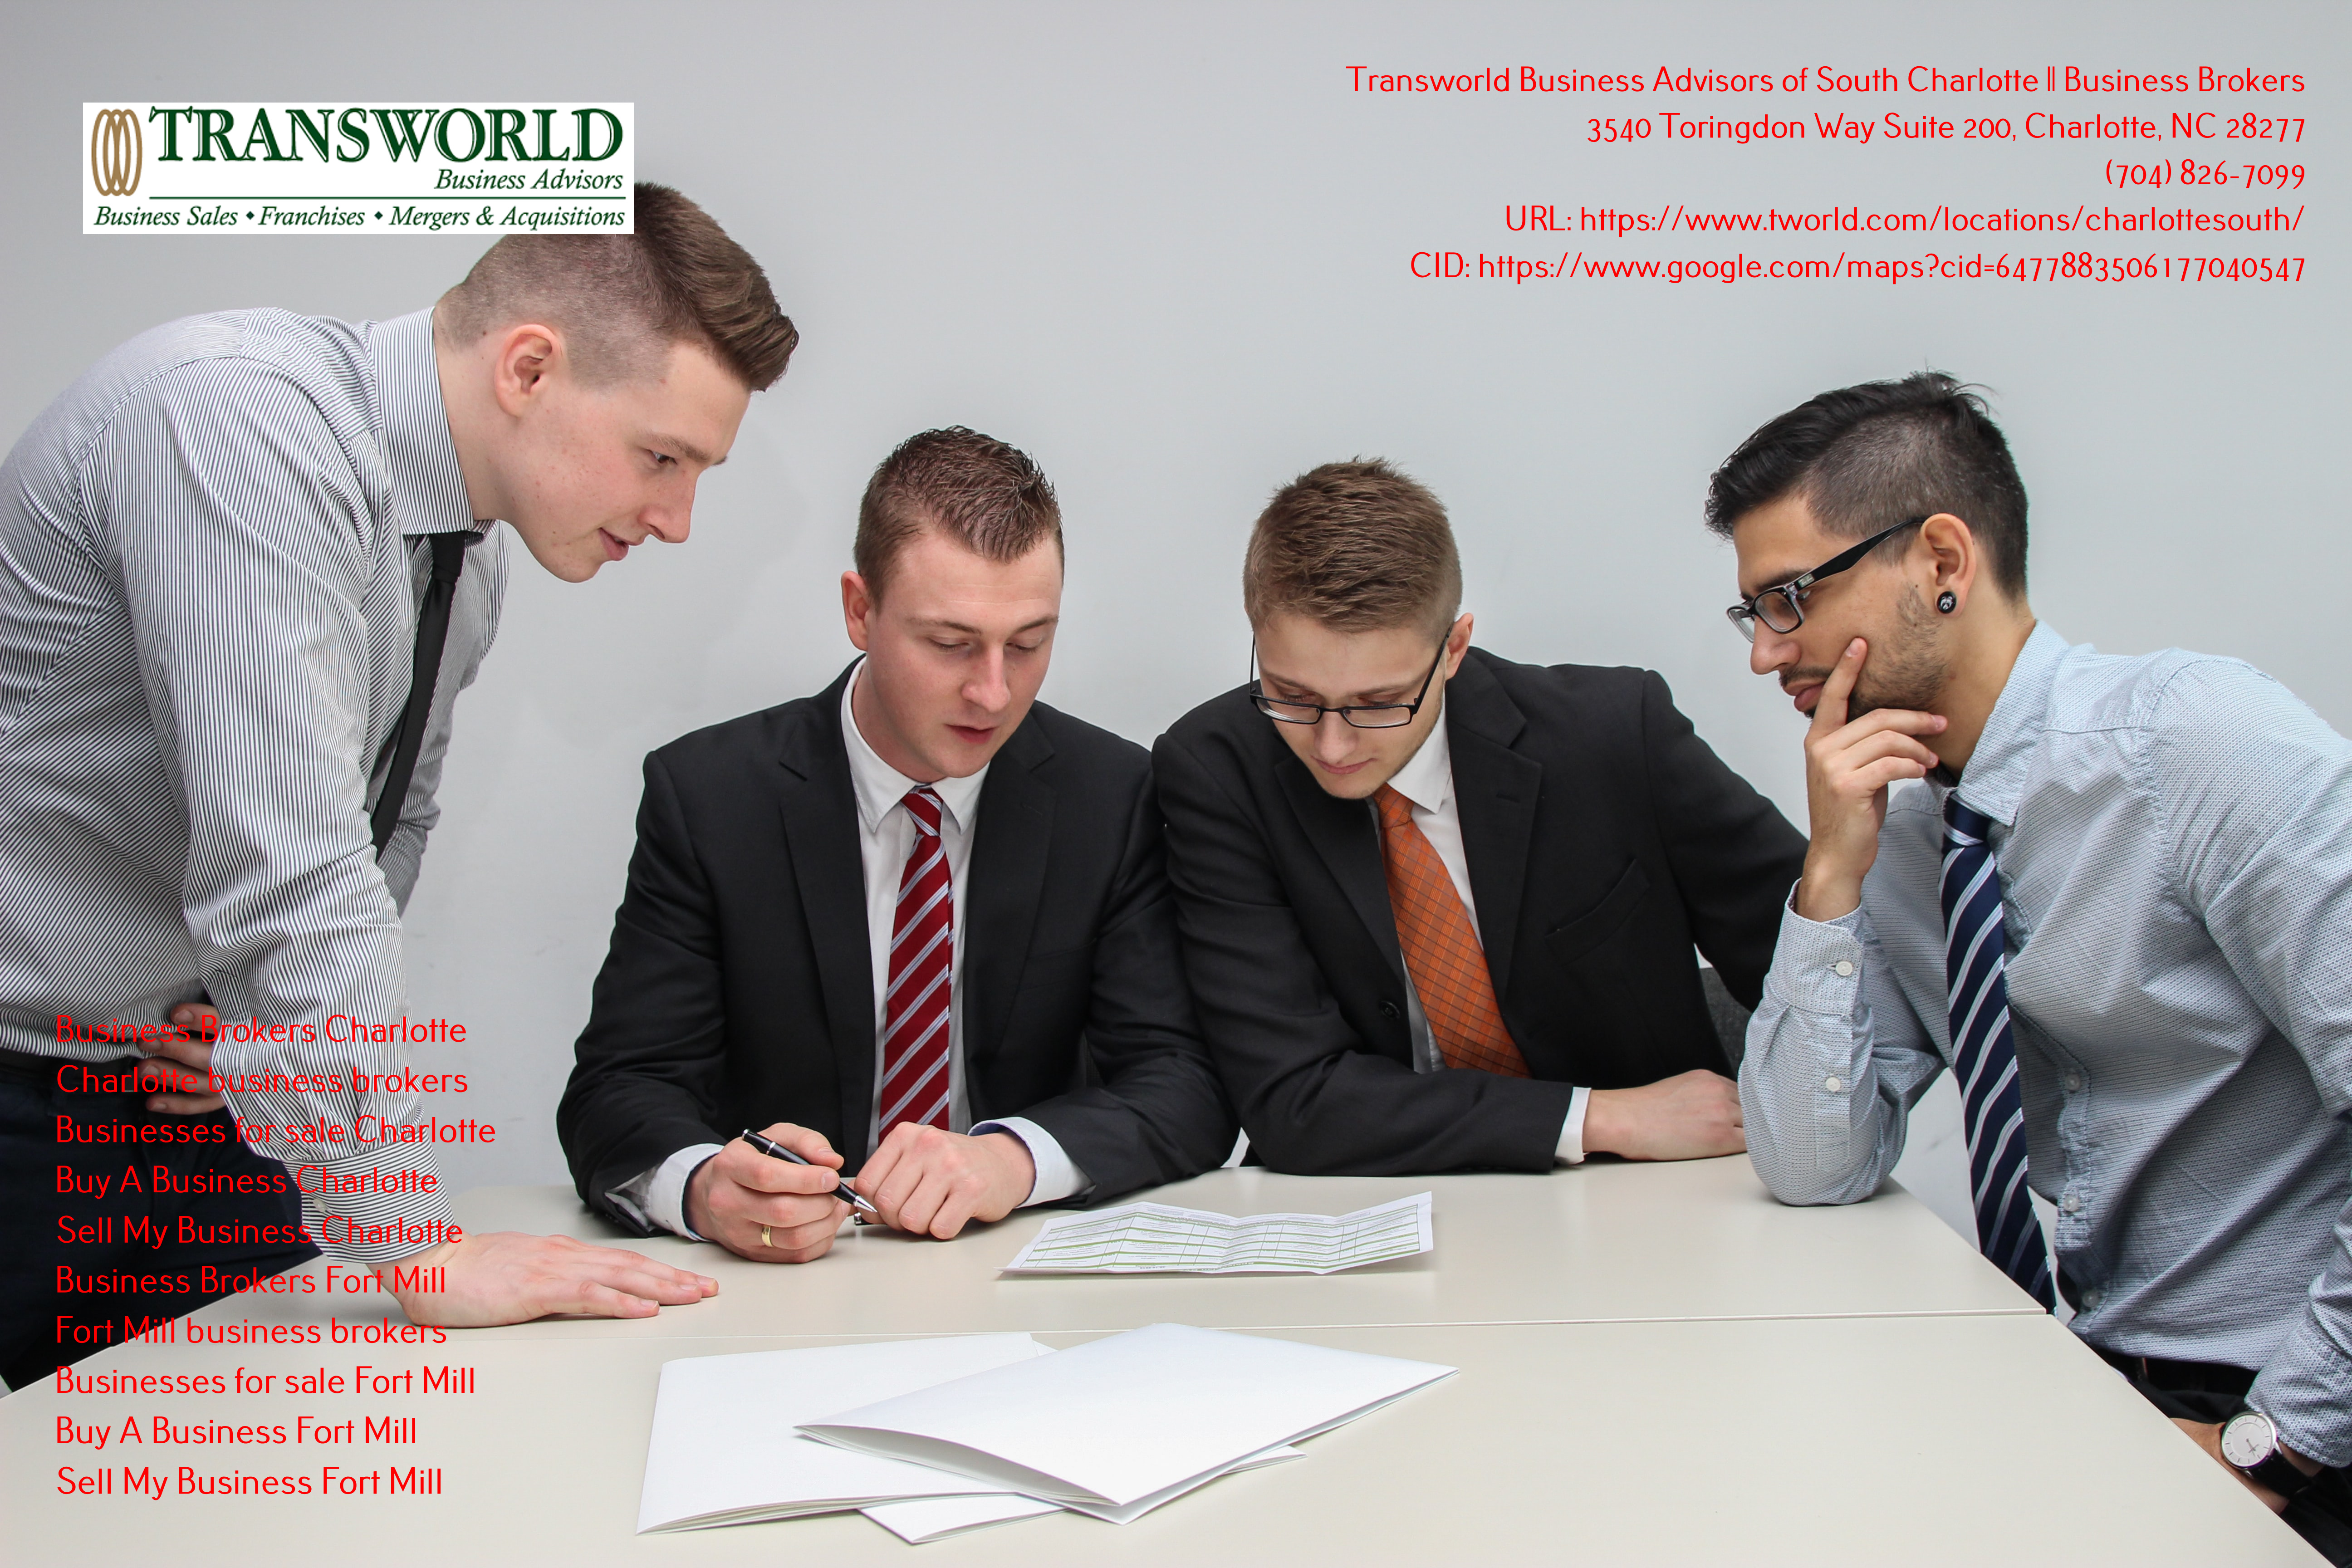 Transworld Business Advisors of South Charlotte Informs Clients on What They Should Be Looking for When Seeking Business Brokers